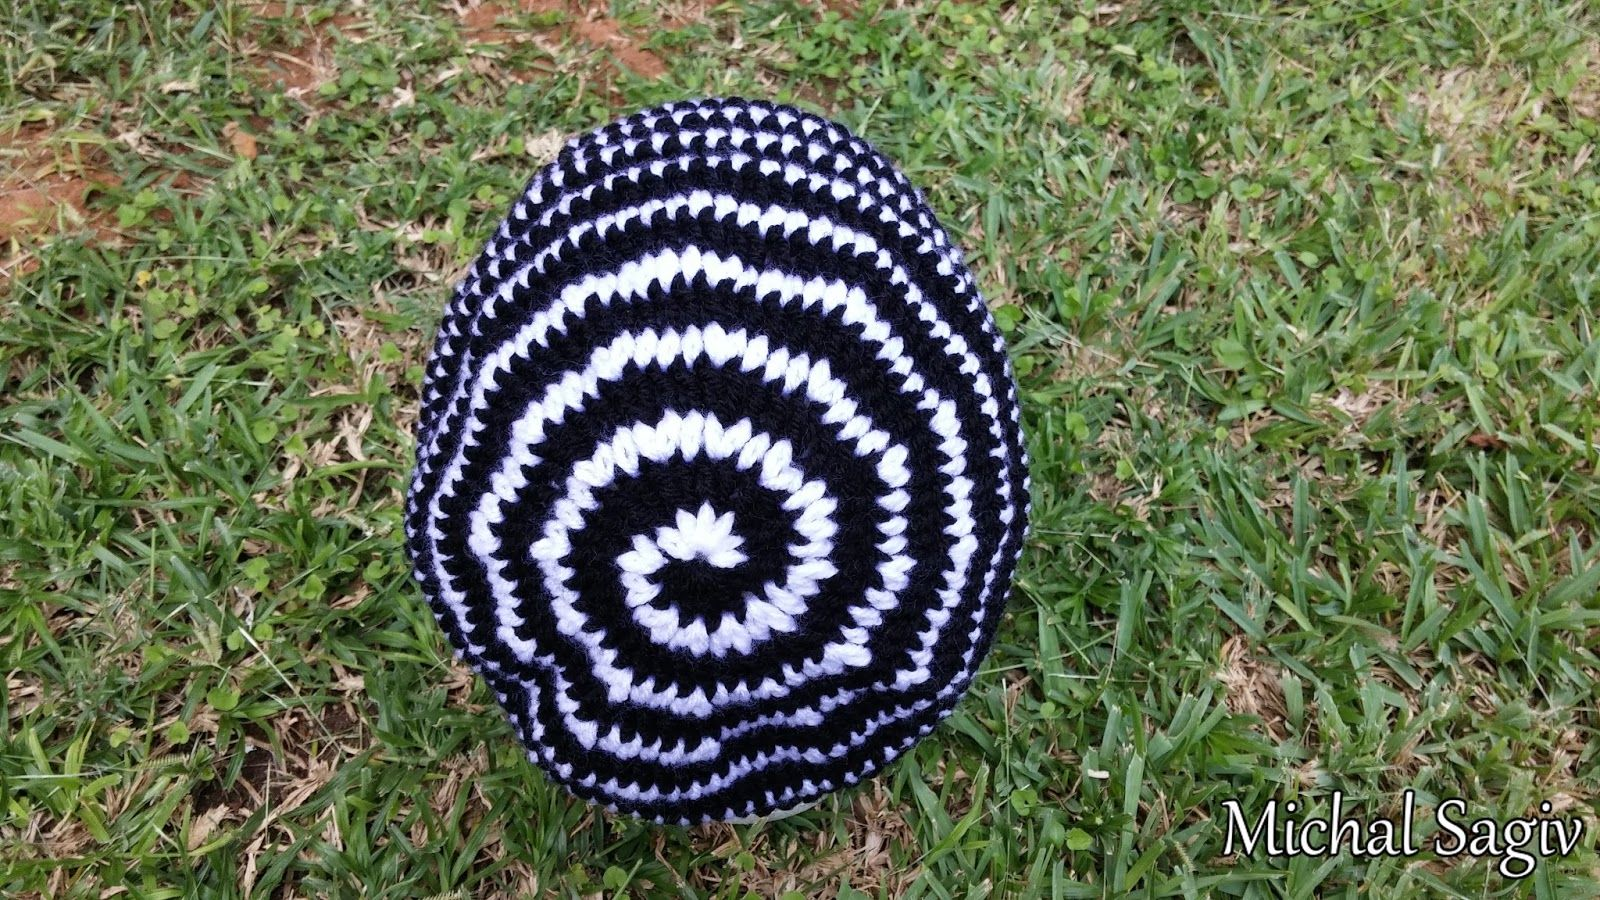 Crochet mind crochet reversible spiral beehive unisex hat black crochet mind crochet reversible spiral beehive unisex hat black white side made by michal sagiv link to video tutorial baditri Image collections